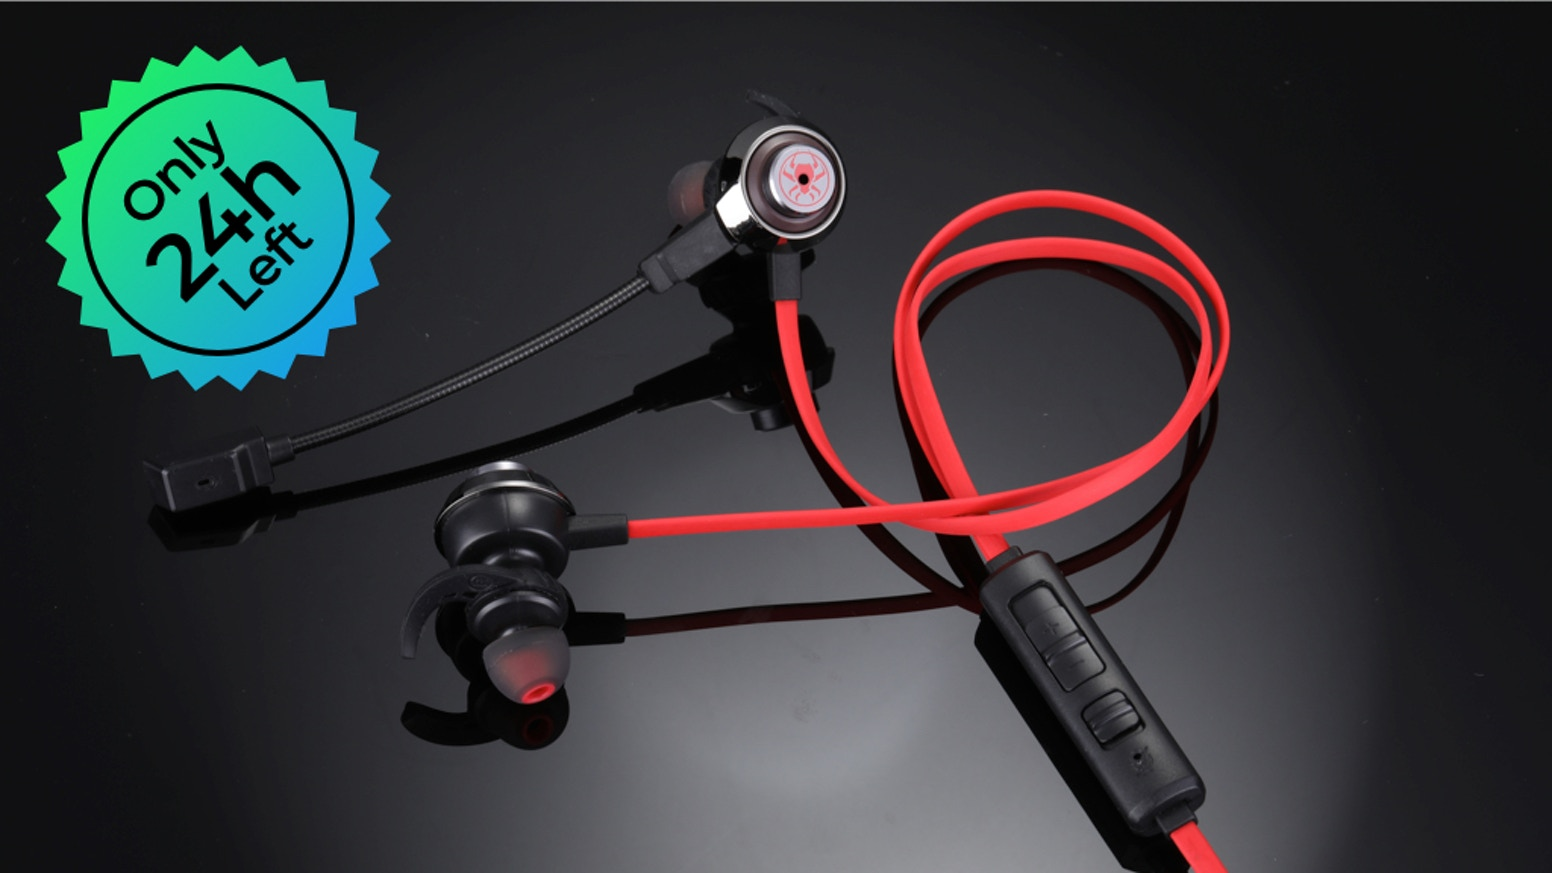 Quake:Lightest Virtual 7.1 Gaming Earbuds with Vibration by Quake ... d64dfdb639